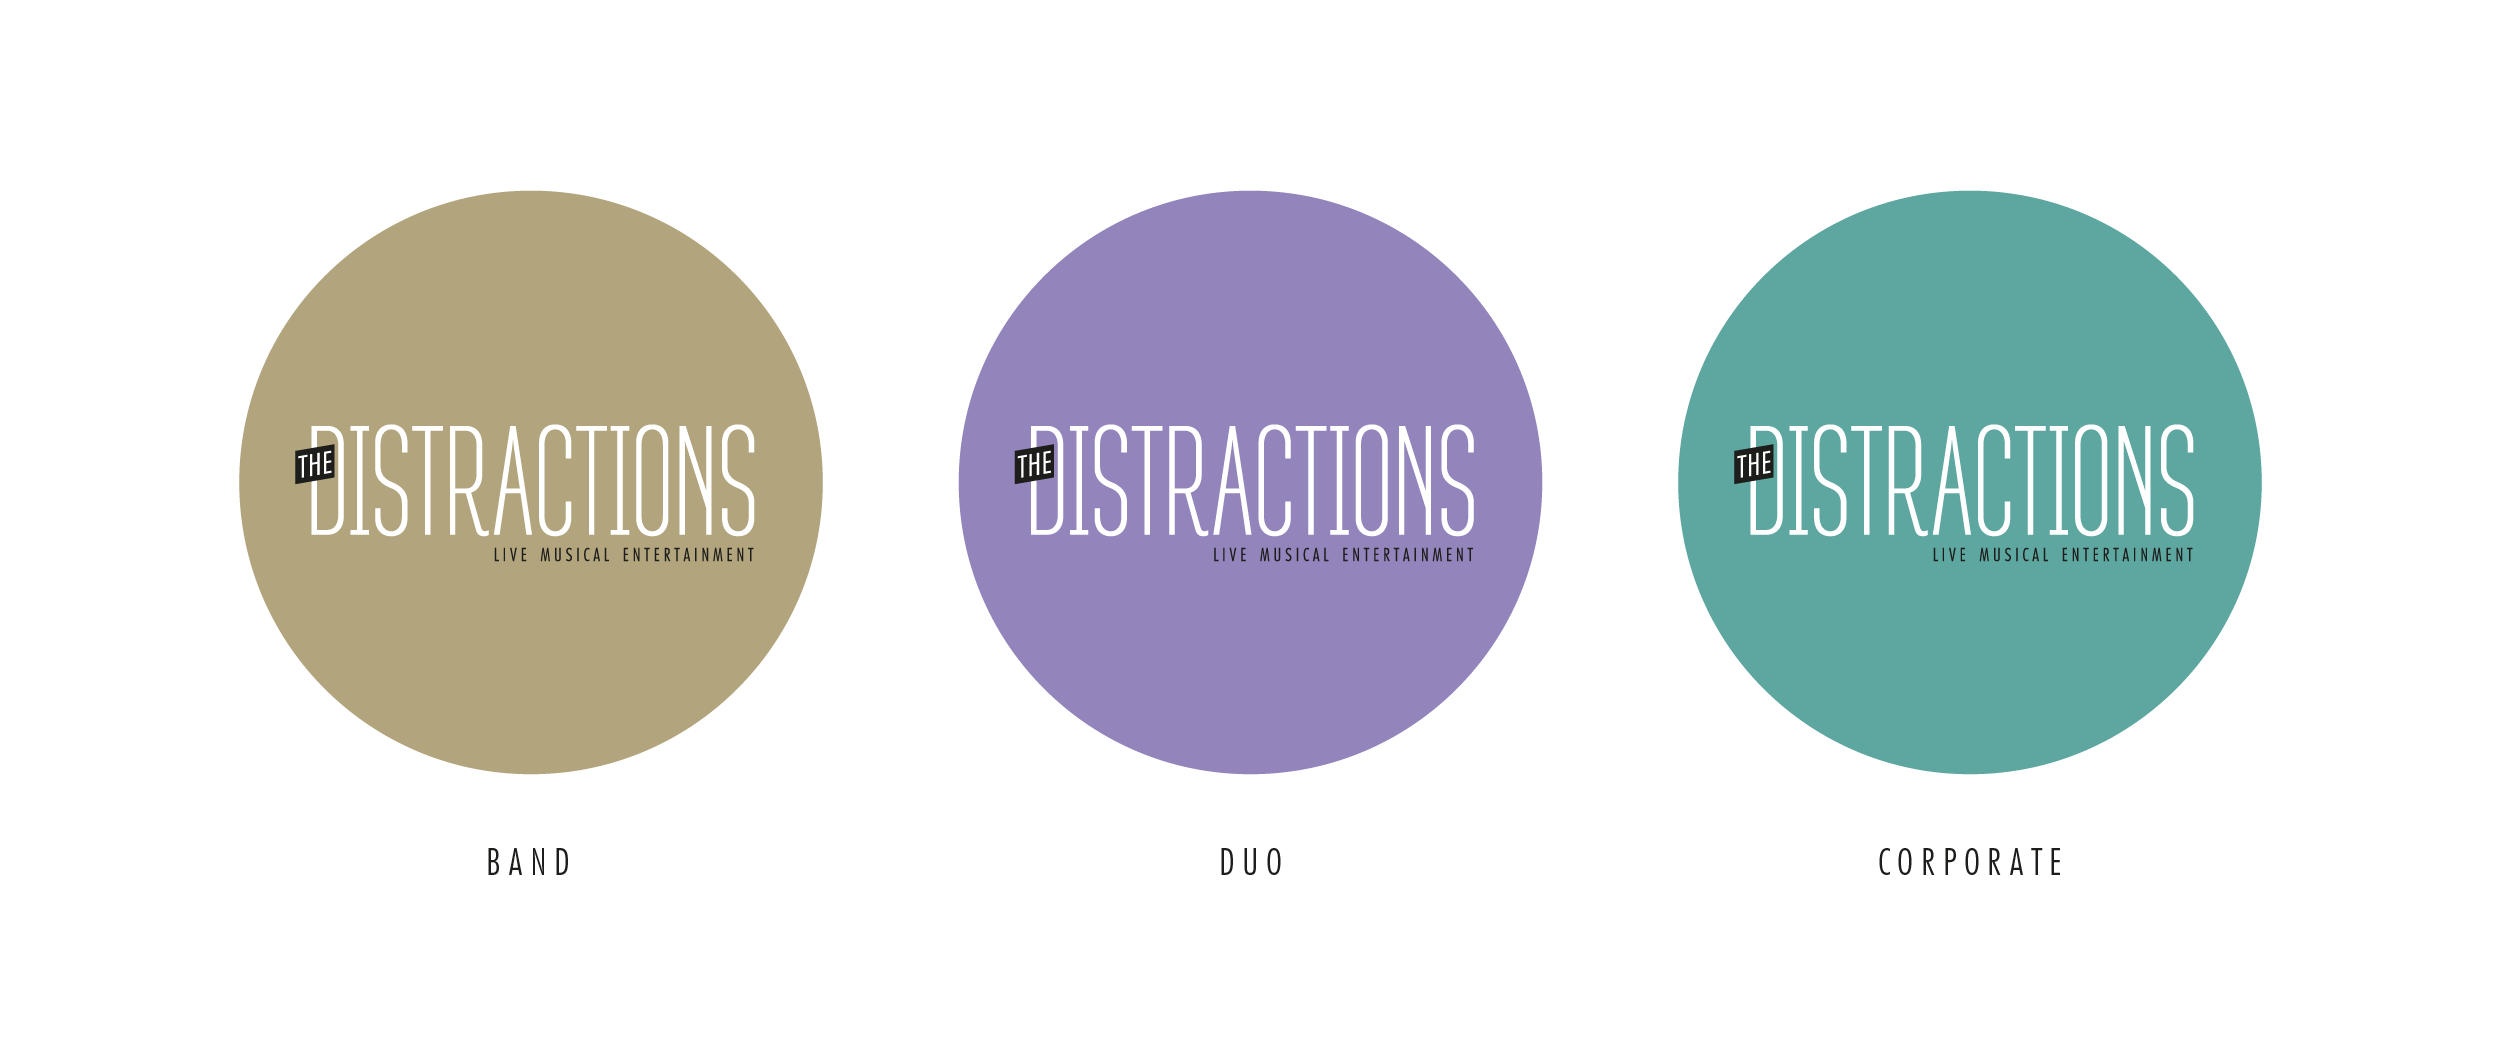 The Distractions Band colours for sub-brands - Band / Duo / Corporate